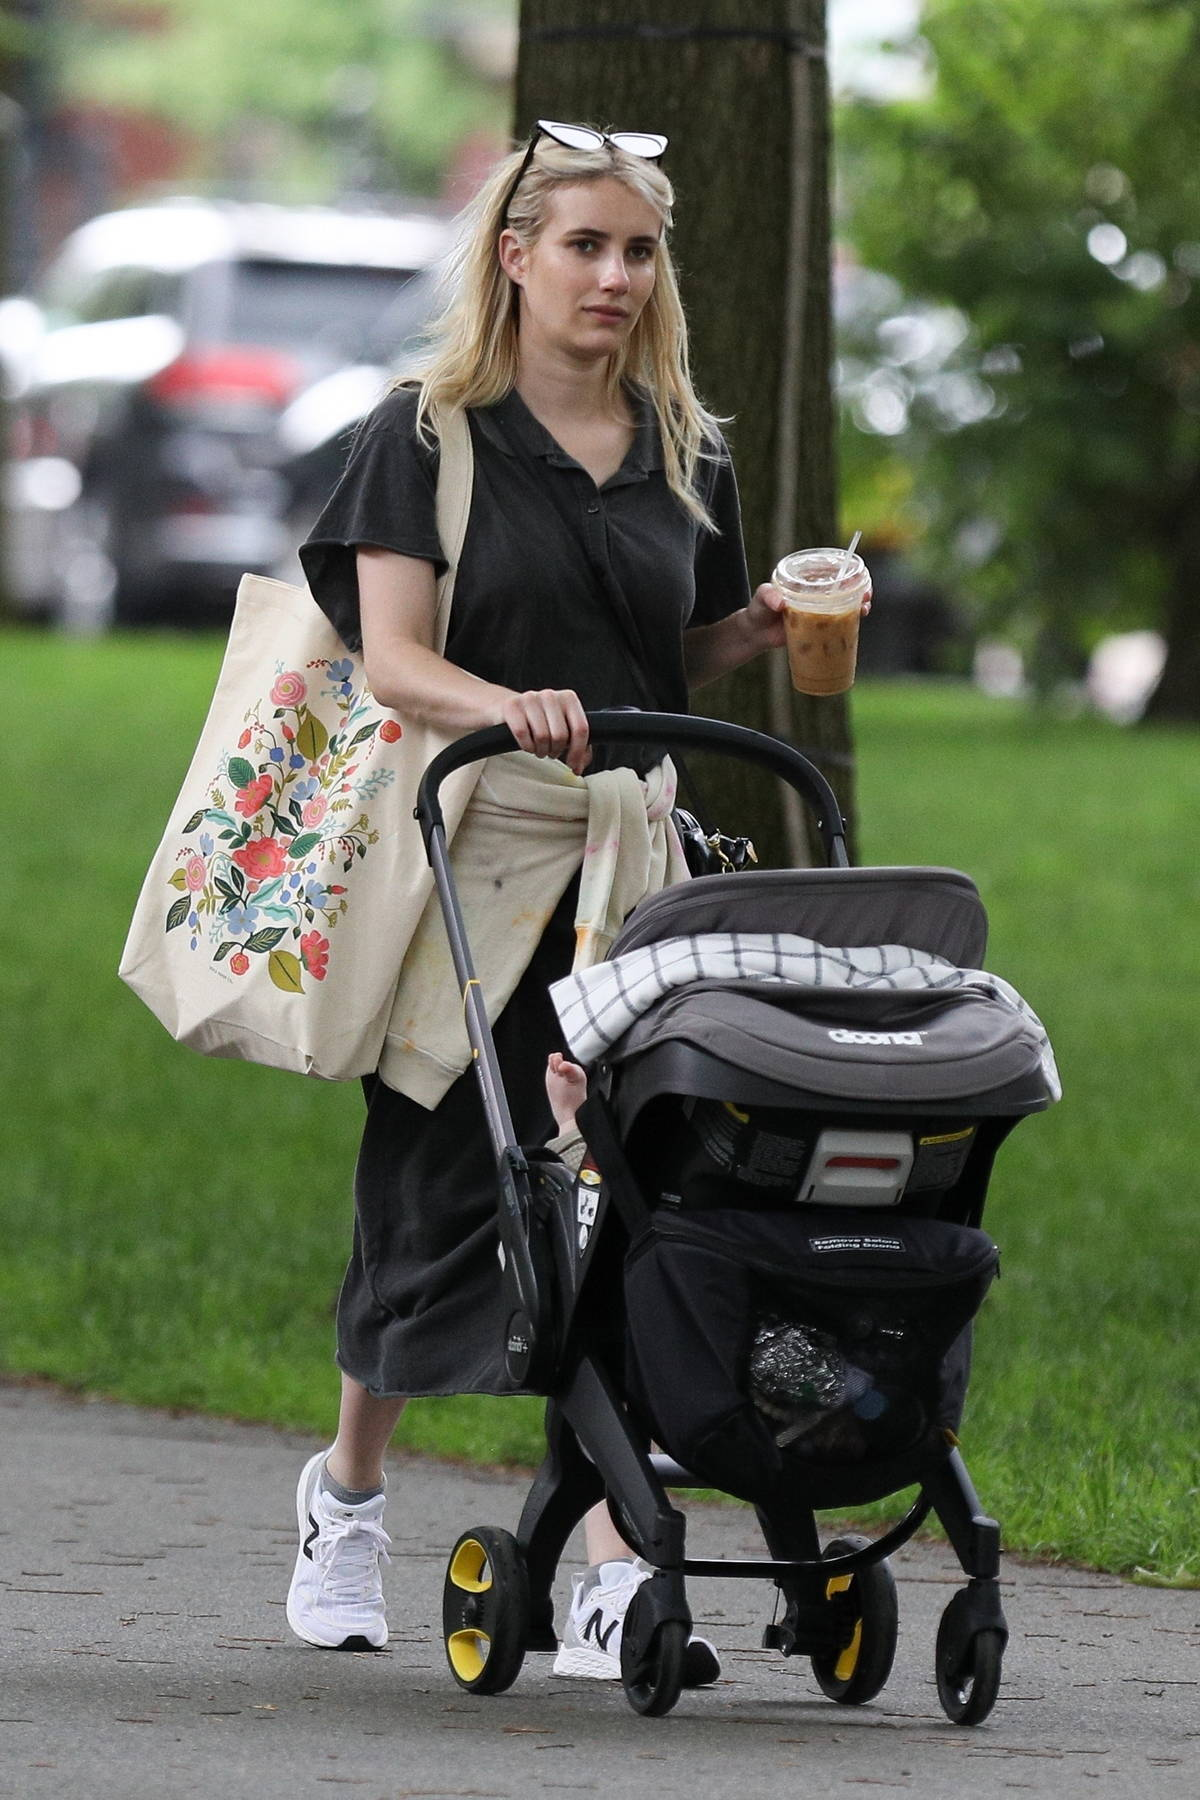 Emma Roberts enjoys an iced coffee while out on a morning walk with her baby in Boston, Massachusetts